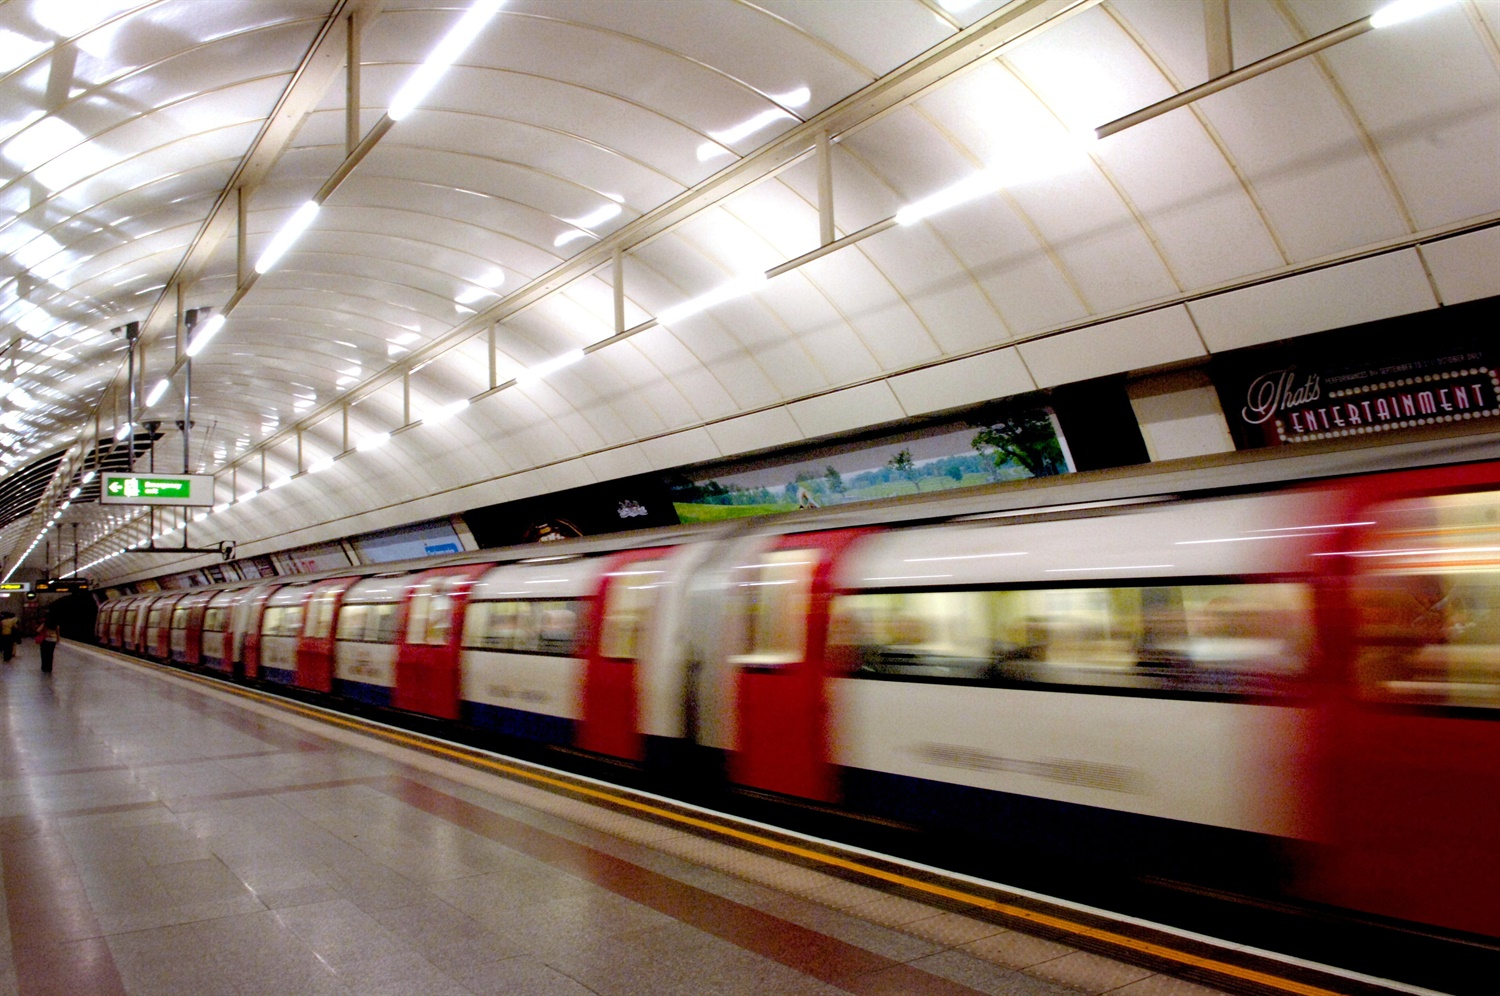 TfL issues £4.8m flooring contract for Piccadilly Line rolling stock